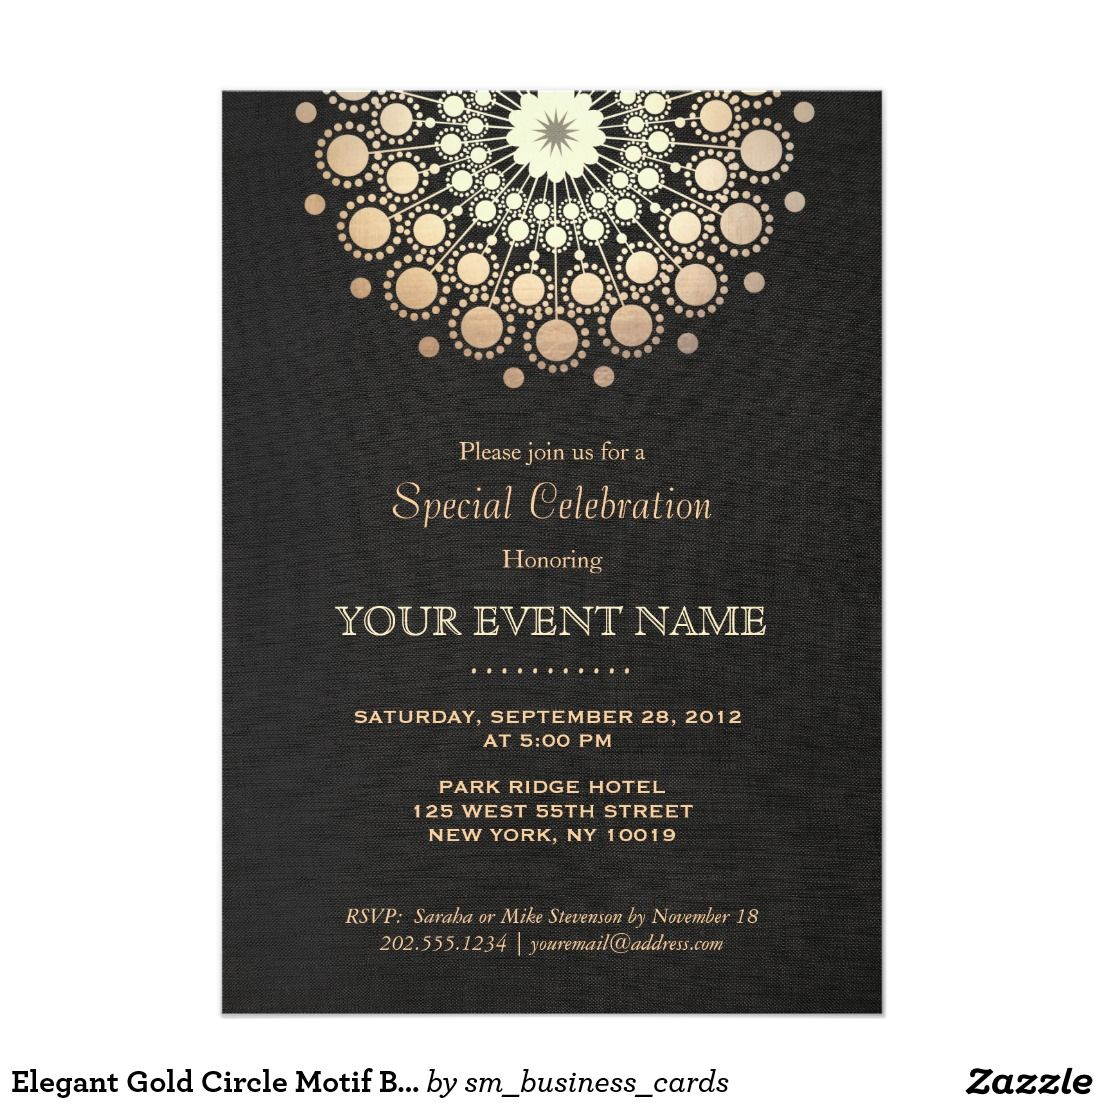 Elegant gold mandala black formal invitation invitation card elegant gold circle motif black linen look formal 5x7 paper invitation card designed by maura reed stopboris Image collections